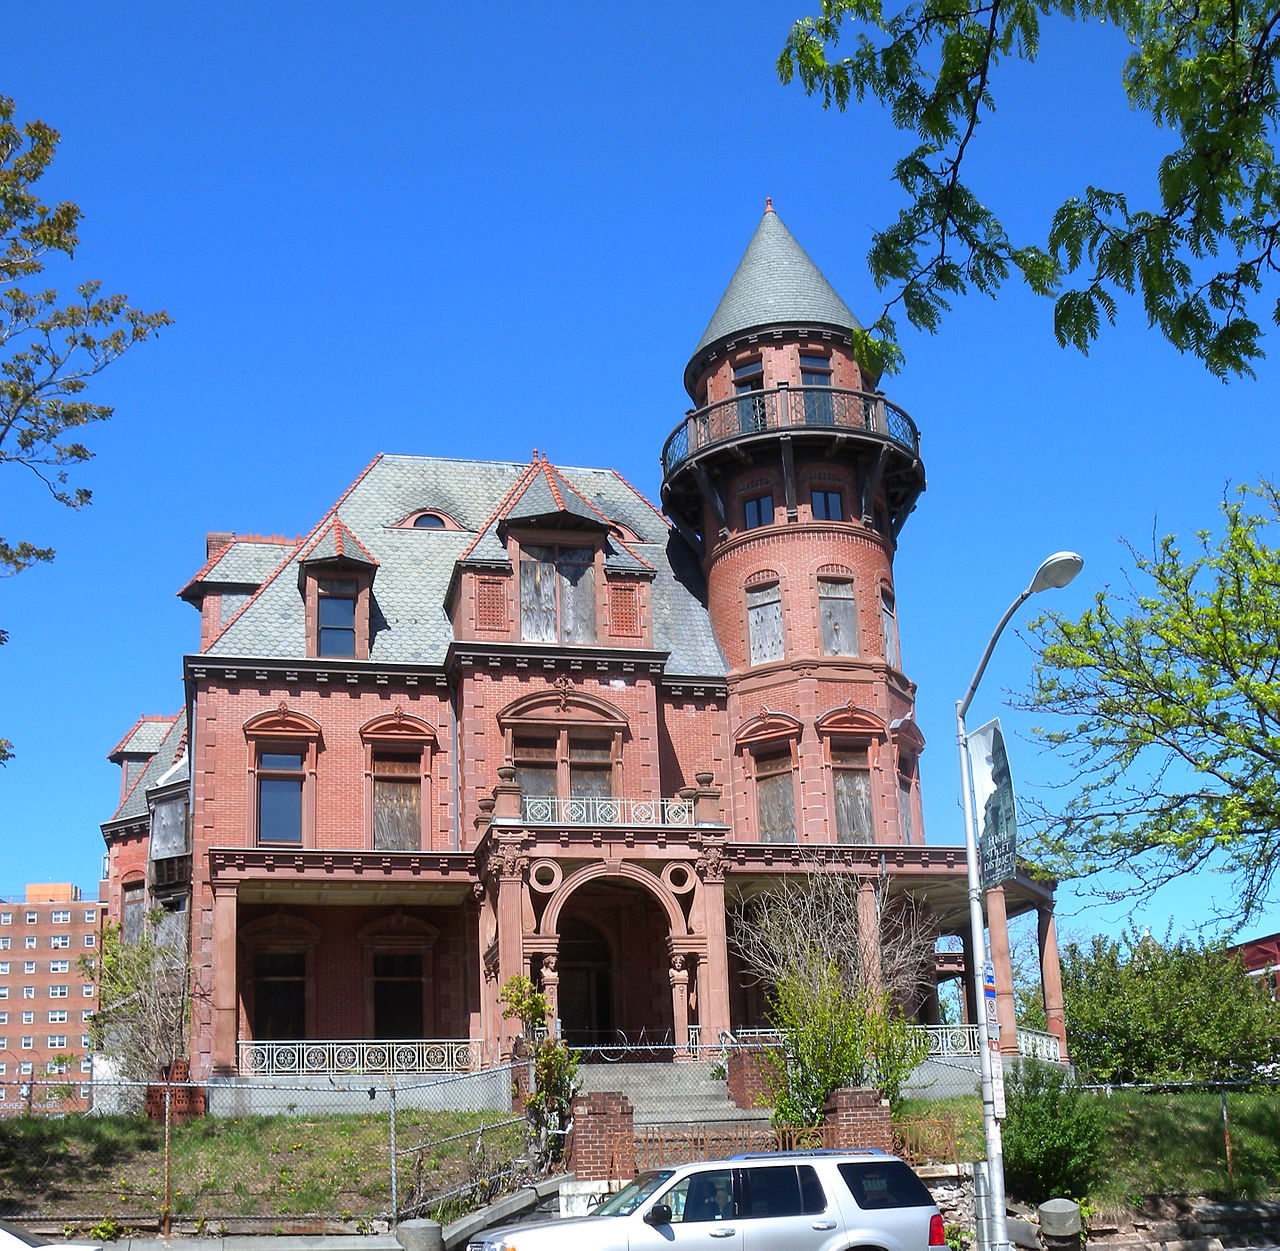 Built in 1888, Krueger Mansion is the most ornate building in the city. Photo: Wikimedia Commons